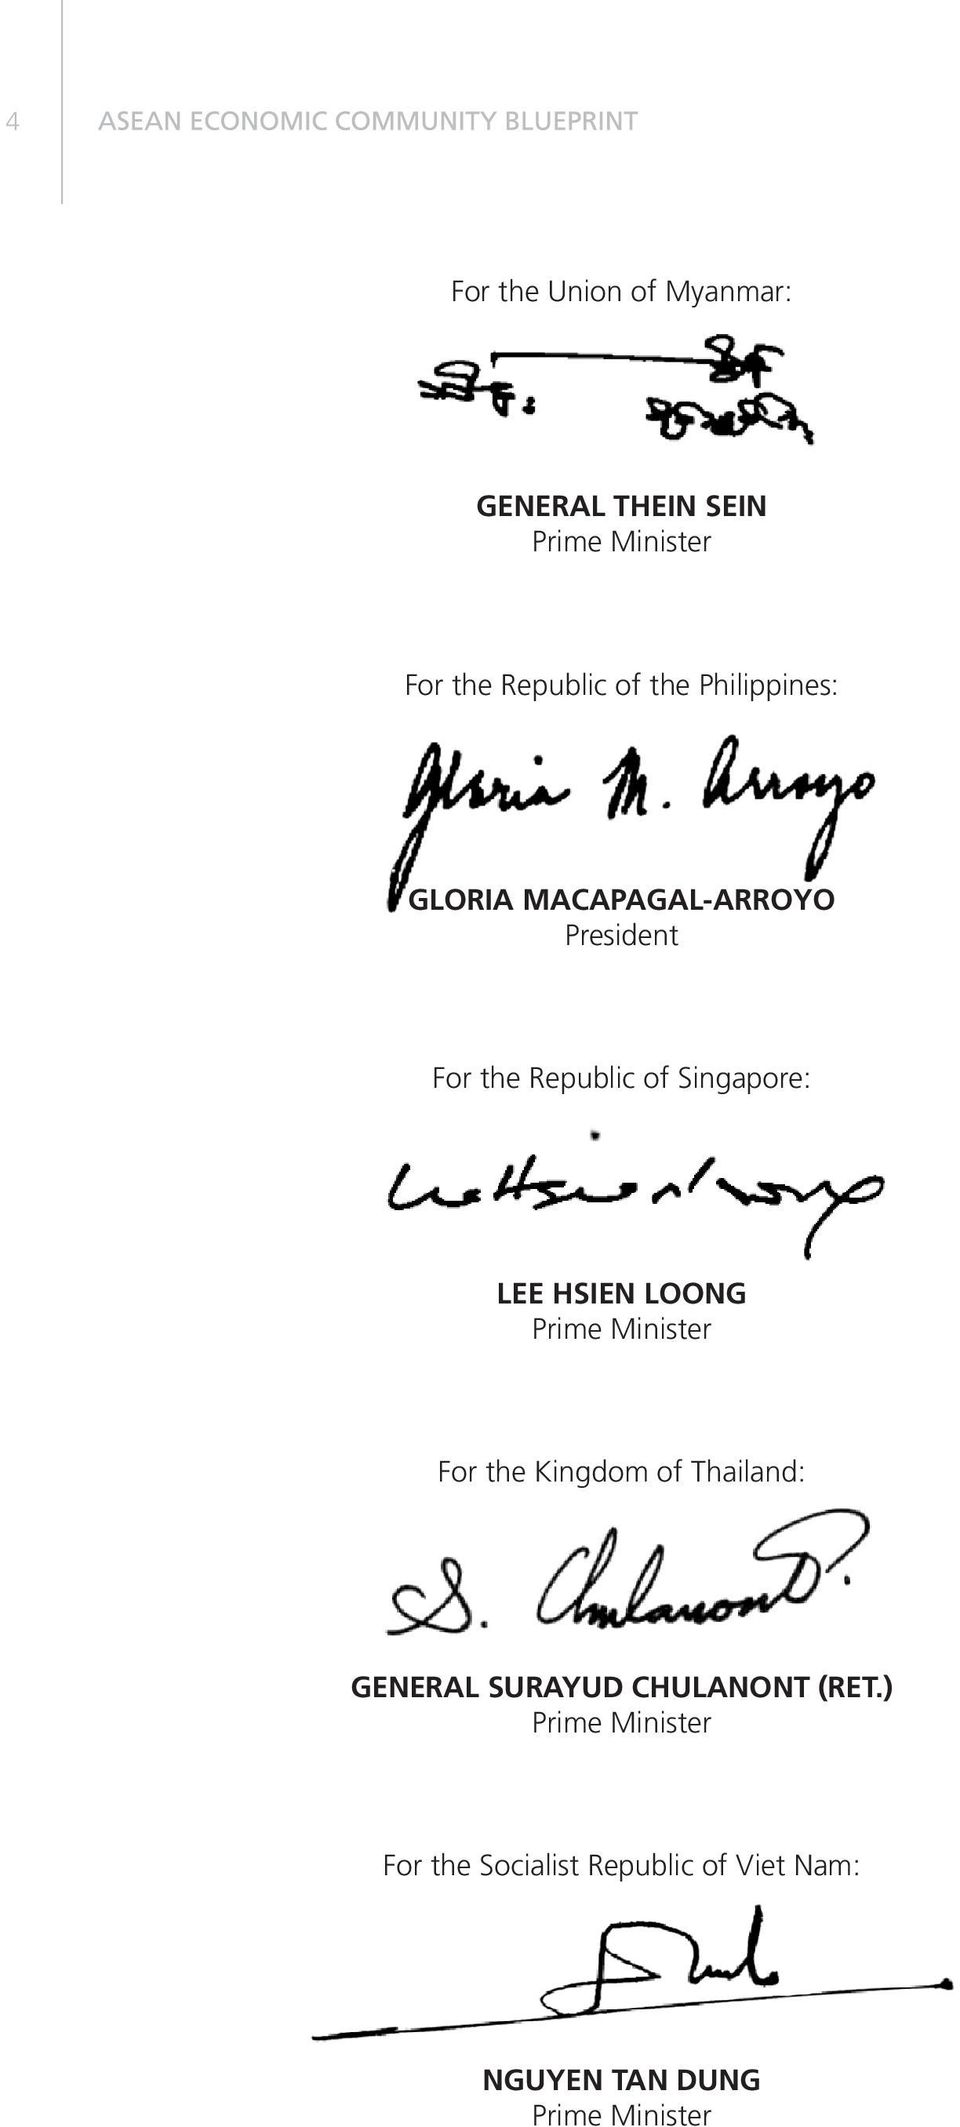 HSIEN LOONG Prime Minister For the Kingdom of Thailand: GENERAL SURAYUD CHULANONT